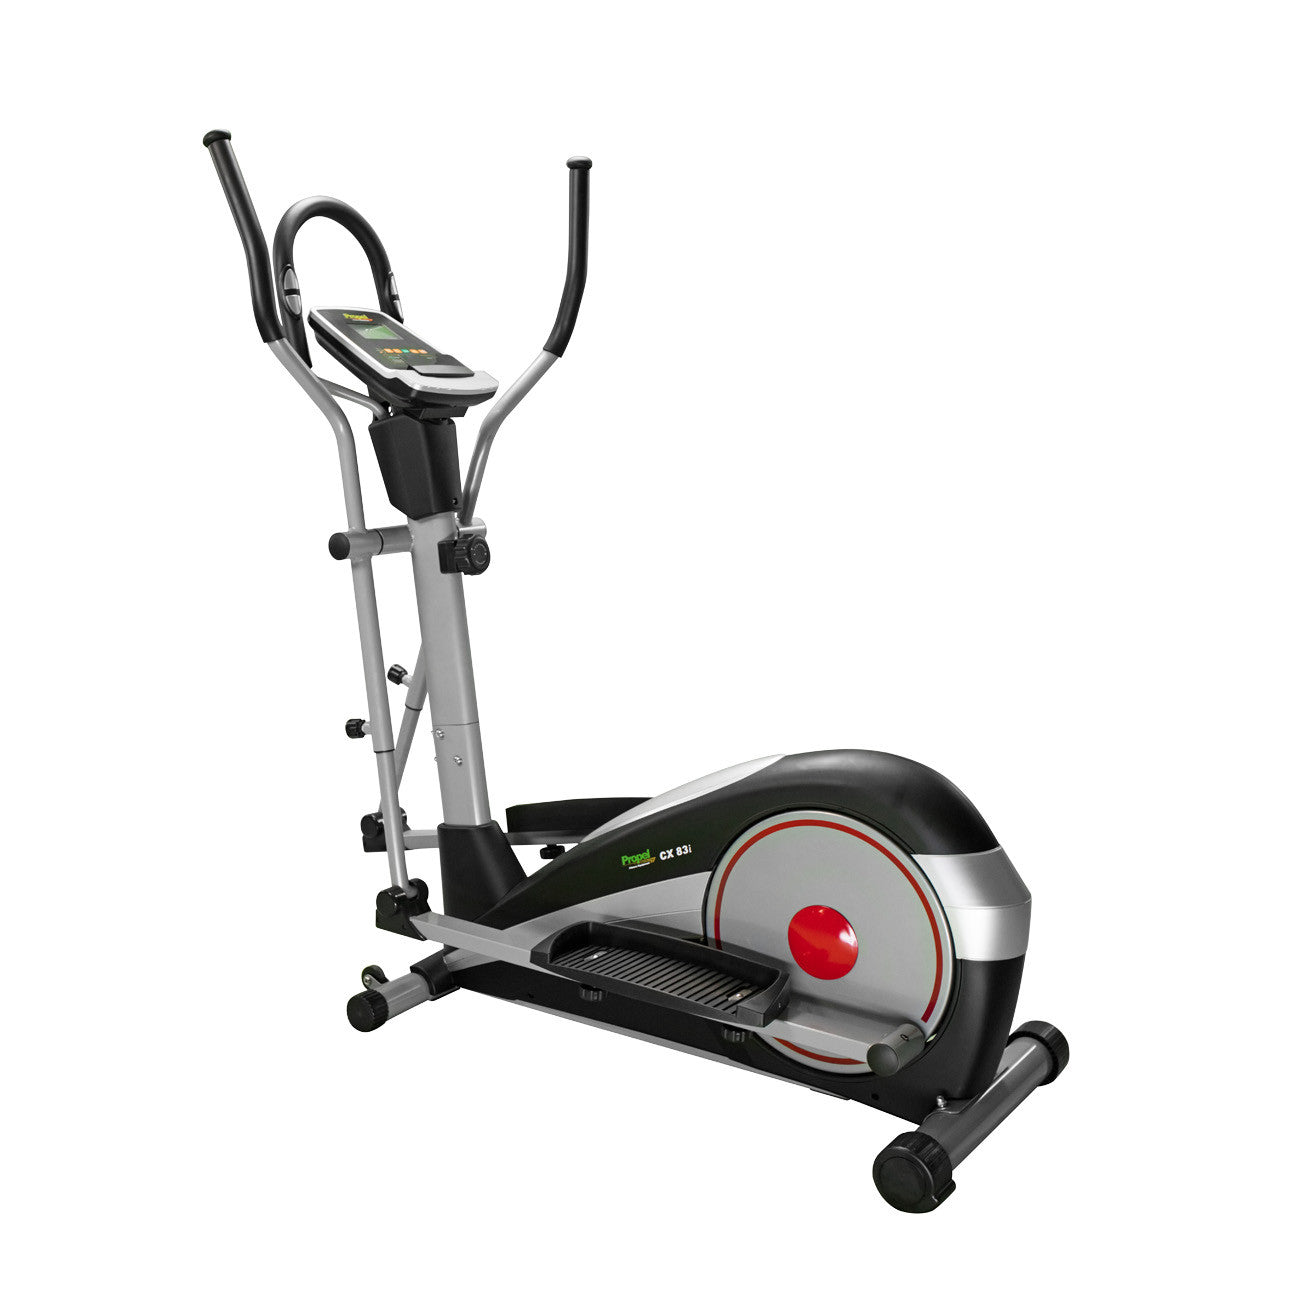 794dde200 ... Propel Cross Trainer CX83i - FitnessOne Store - 1 ...